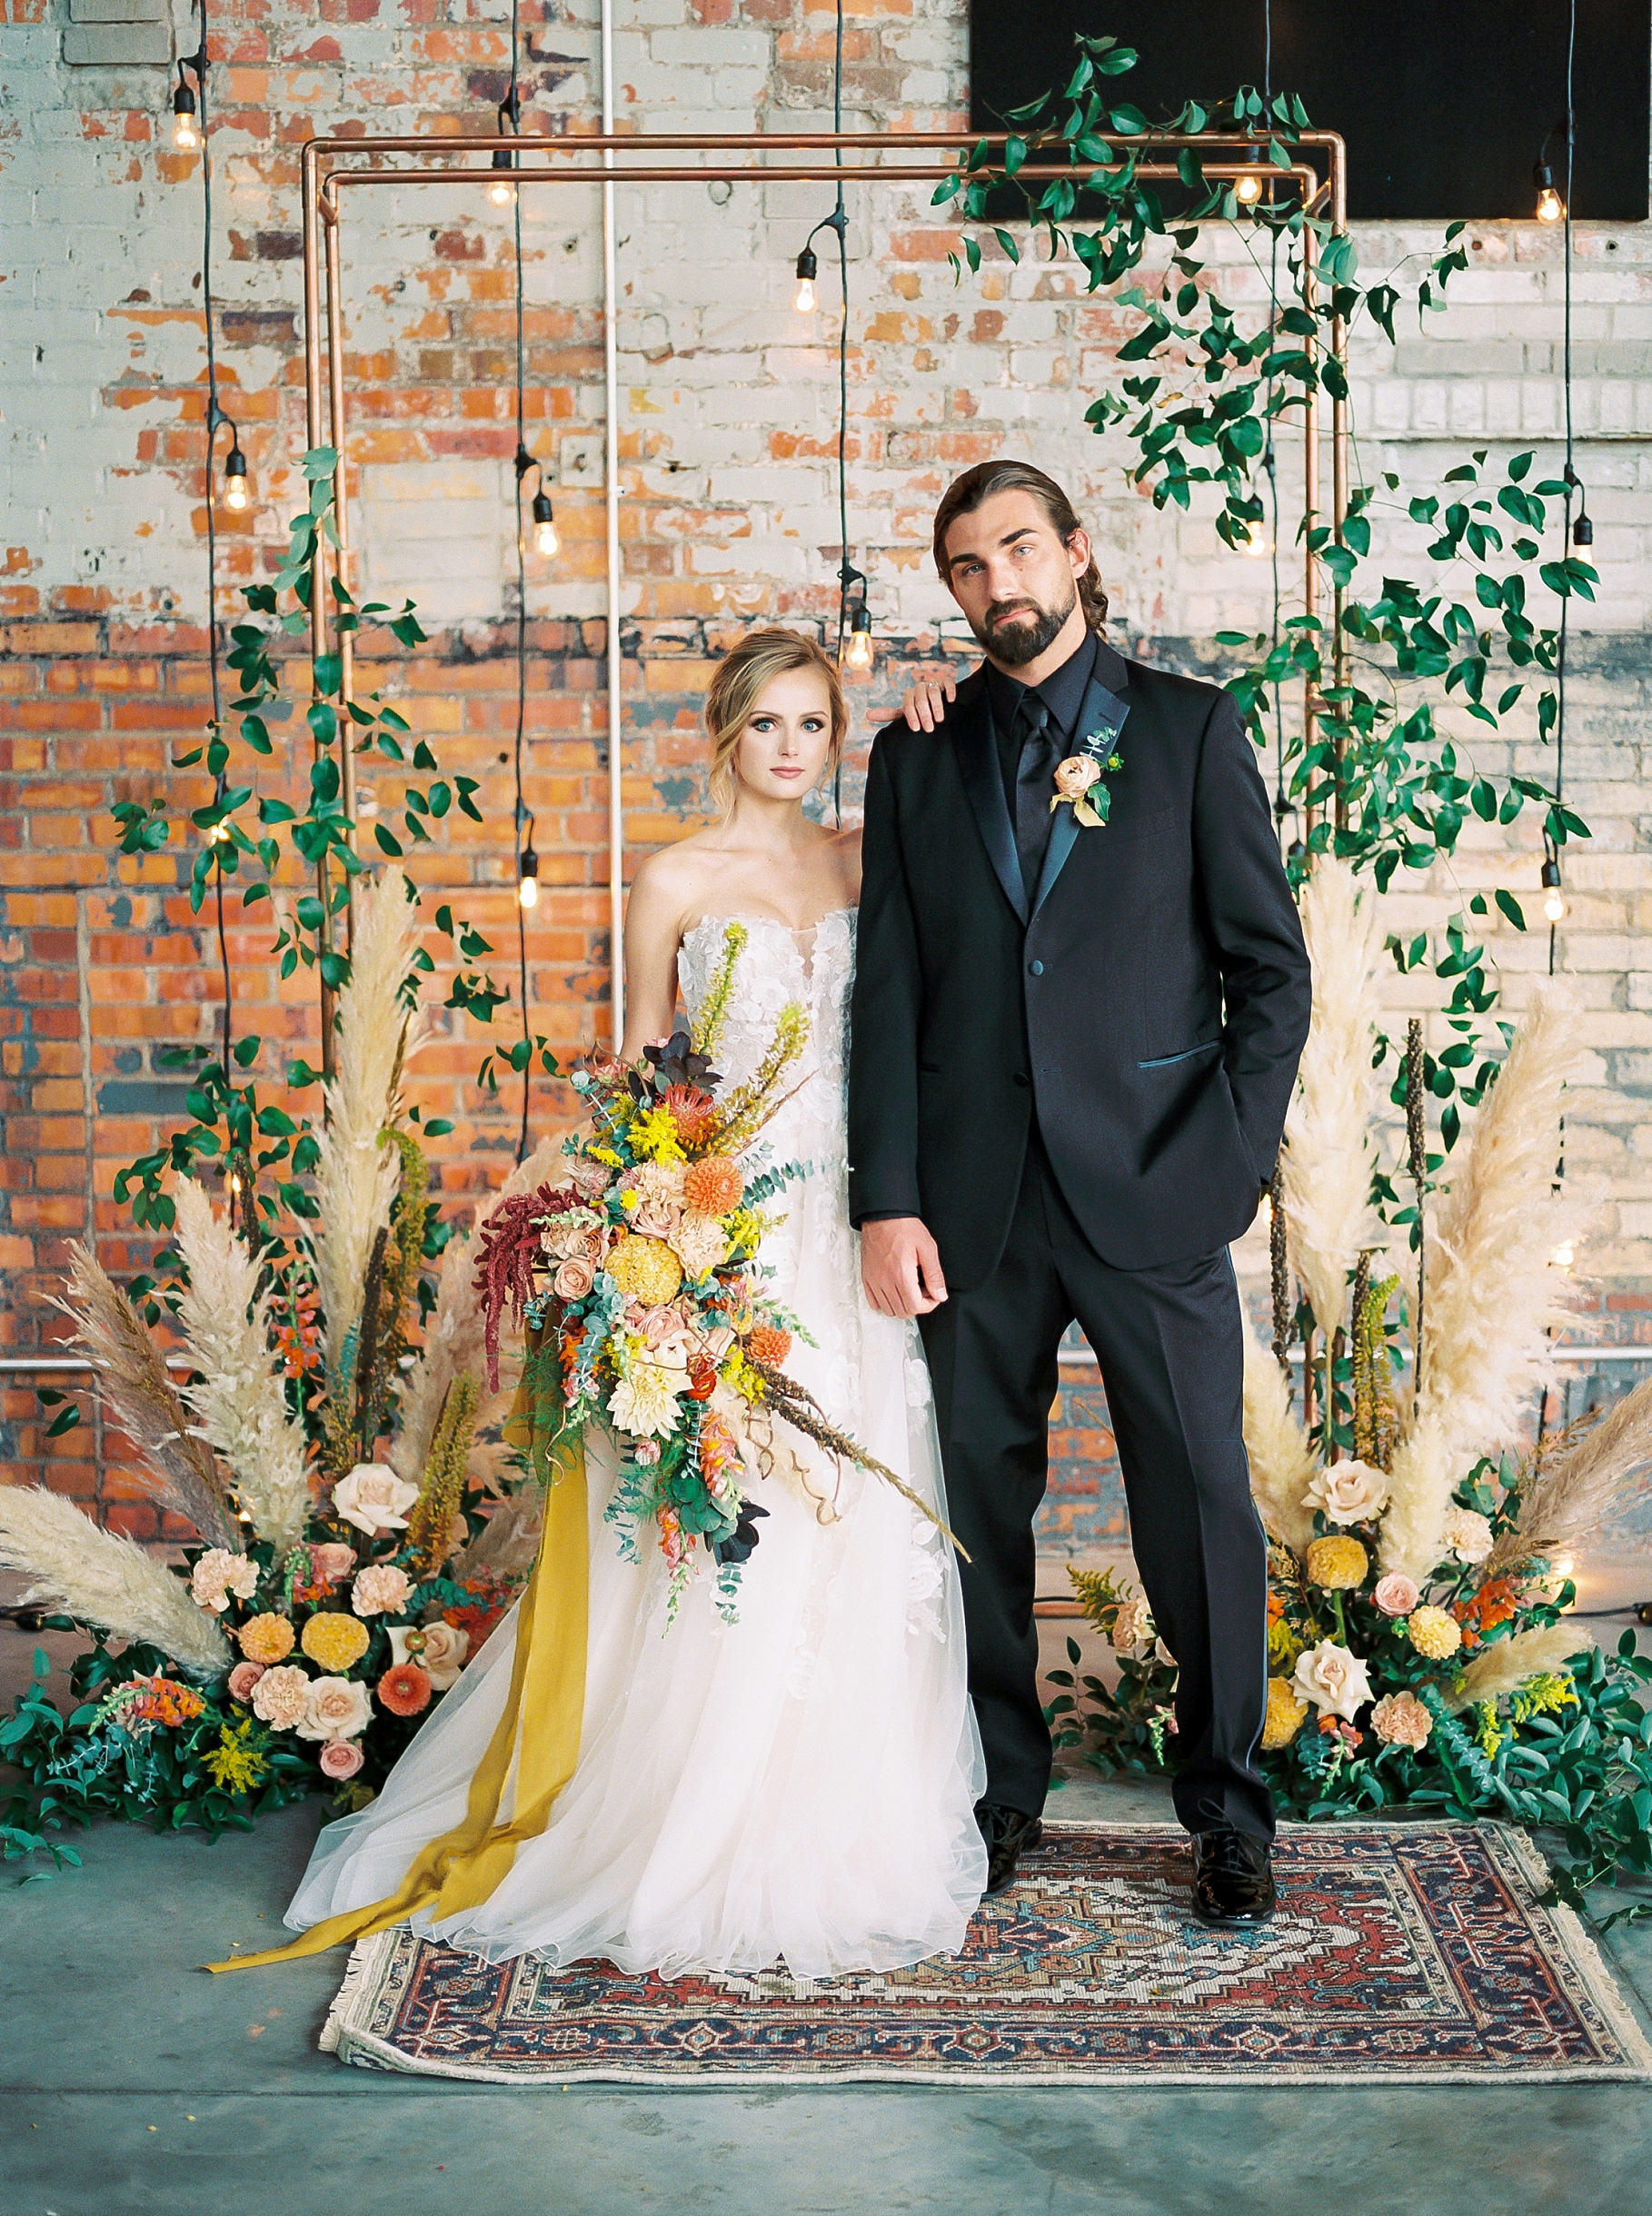 Urban Romance Wedding with Copper Accents at The Millbottom by Kelsi Kliethermes Photography Best Columbia Missouri Wedding Photographer_0066.jpg